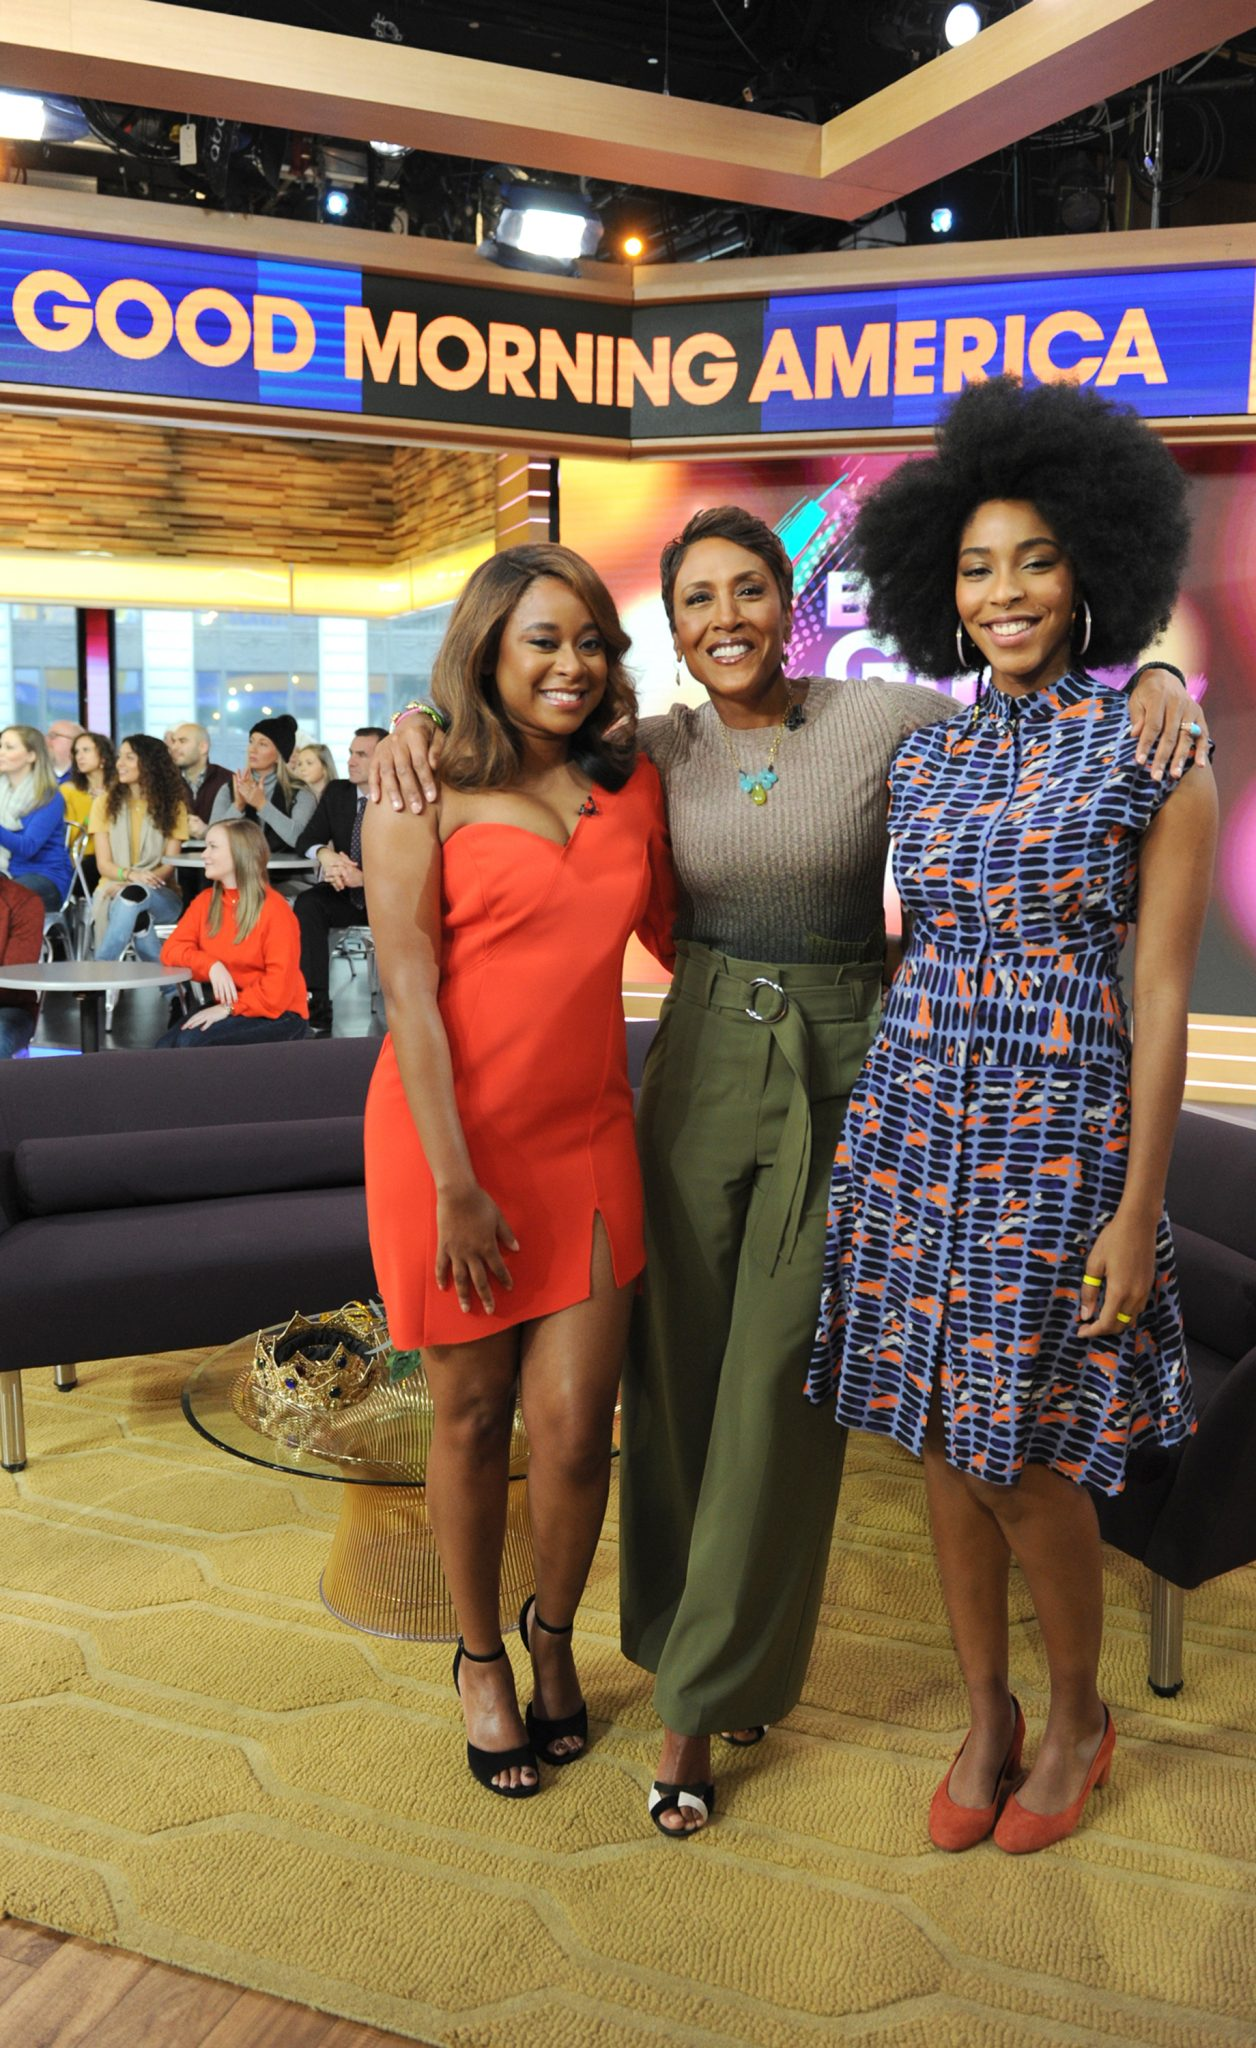 In Case You Missed It: 2 Dope Queens On Good Morning America